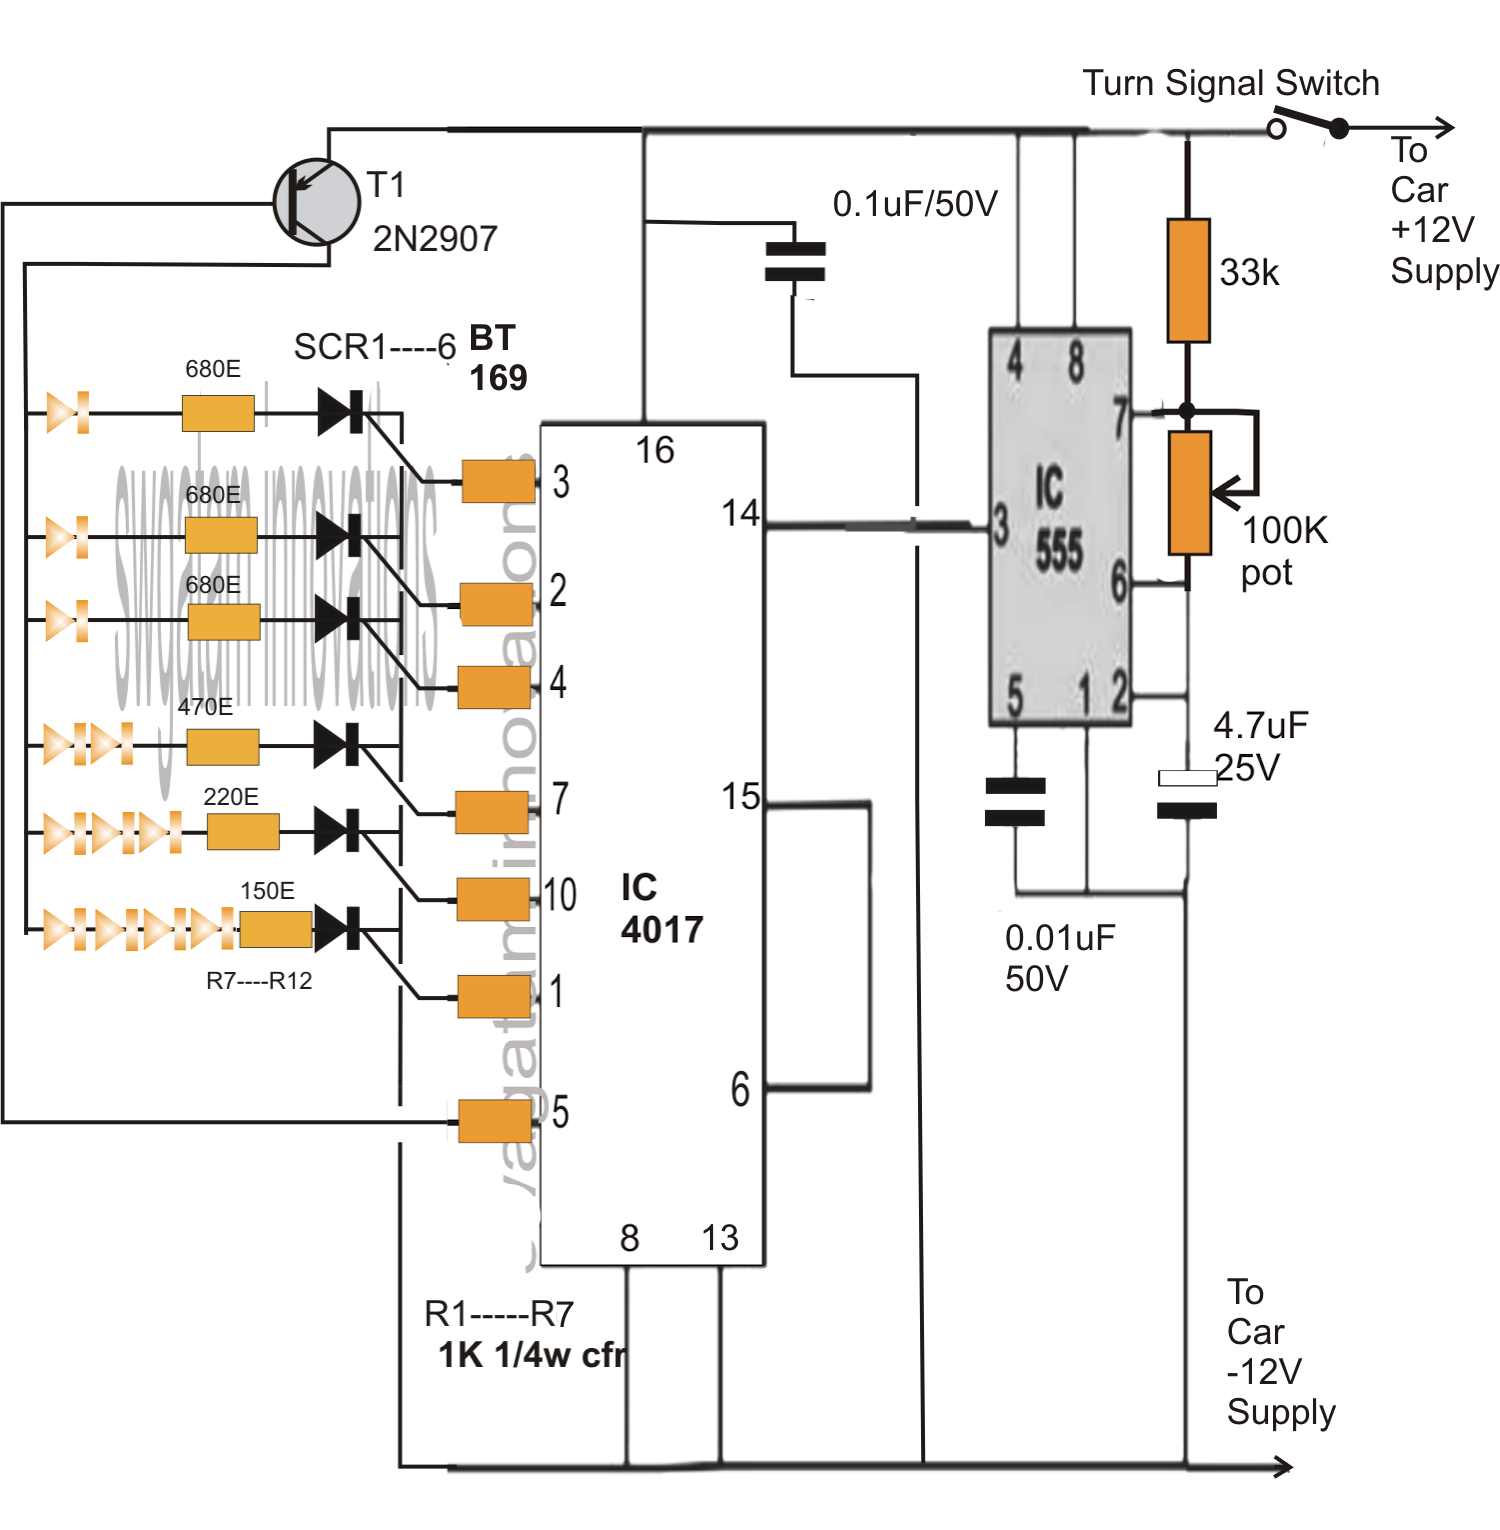 Sequential Bar Graph Turn Light on Turn Signal Switch Wiring Diagram